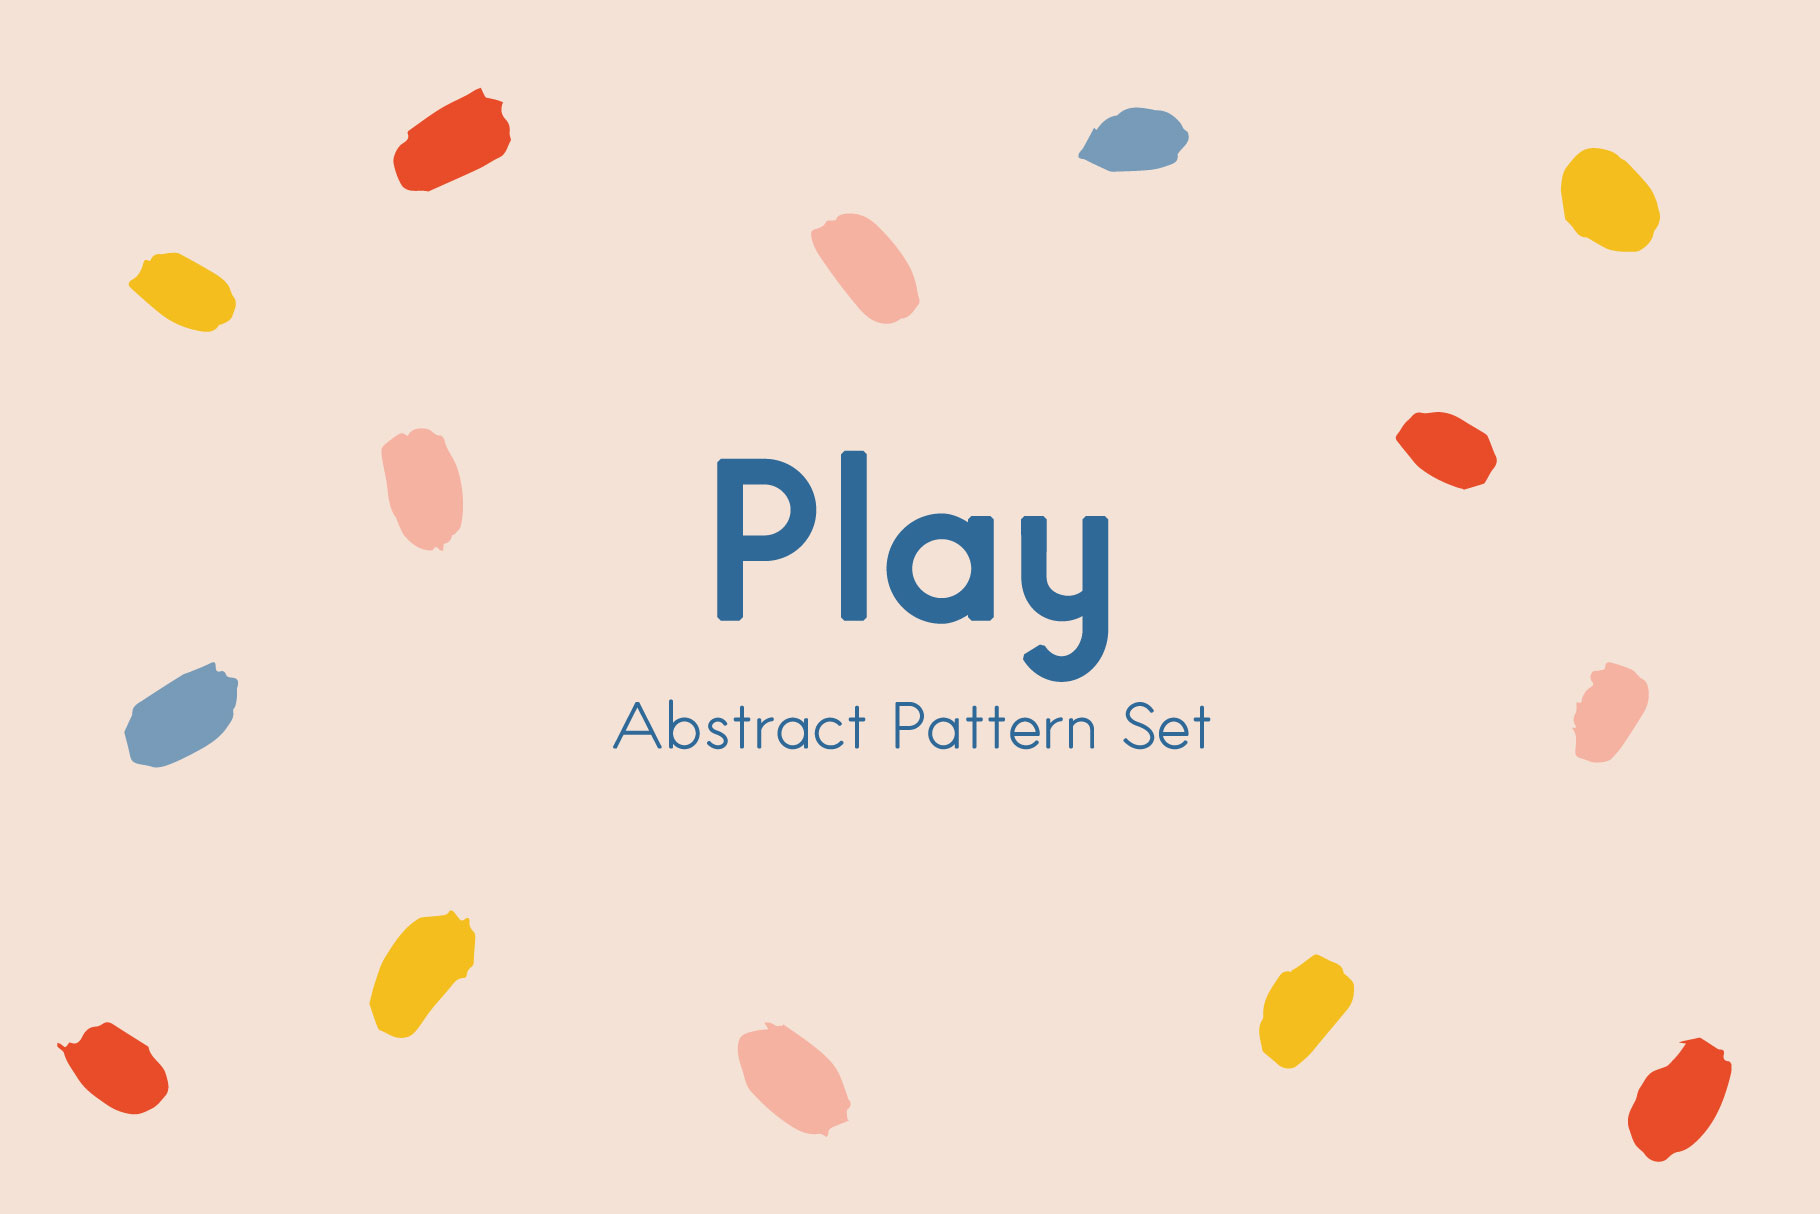 Play Abstract Pattern Set